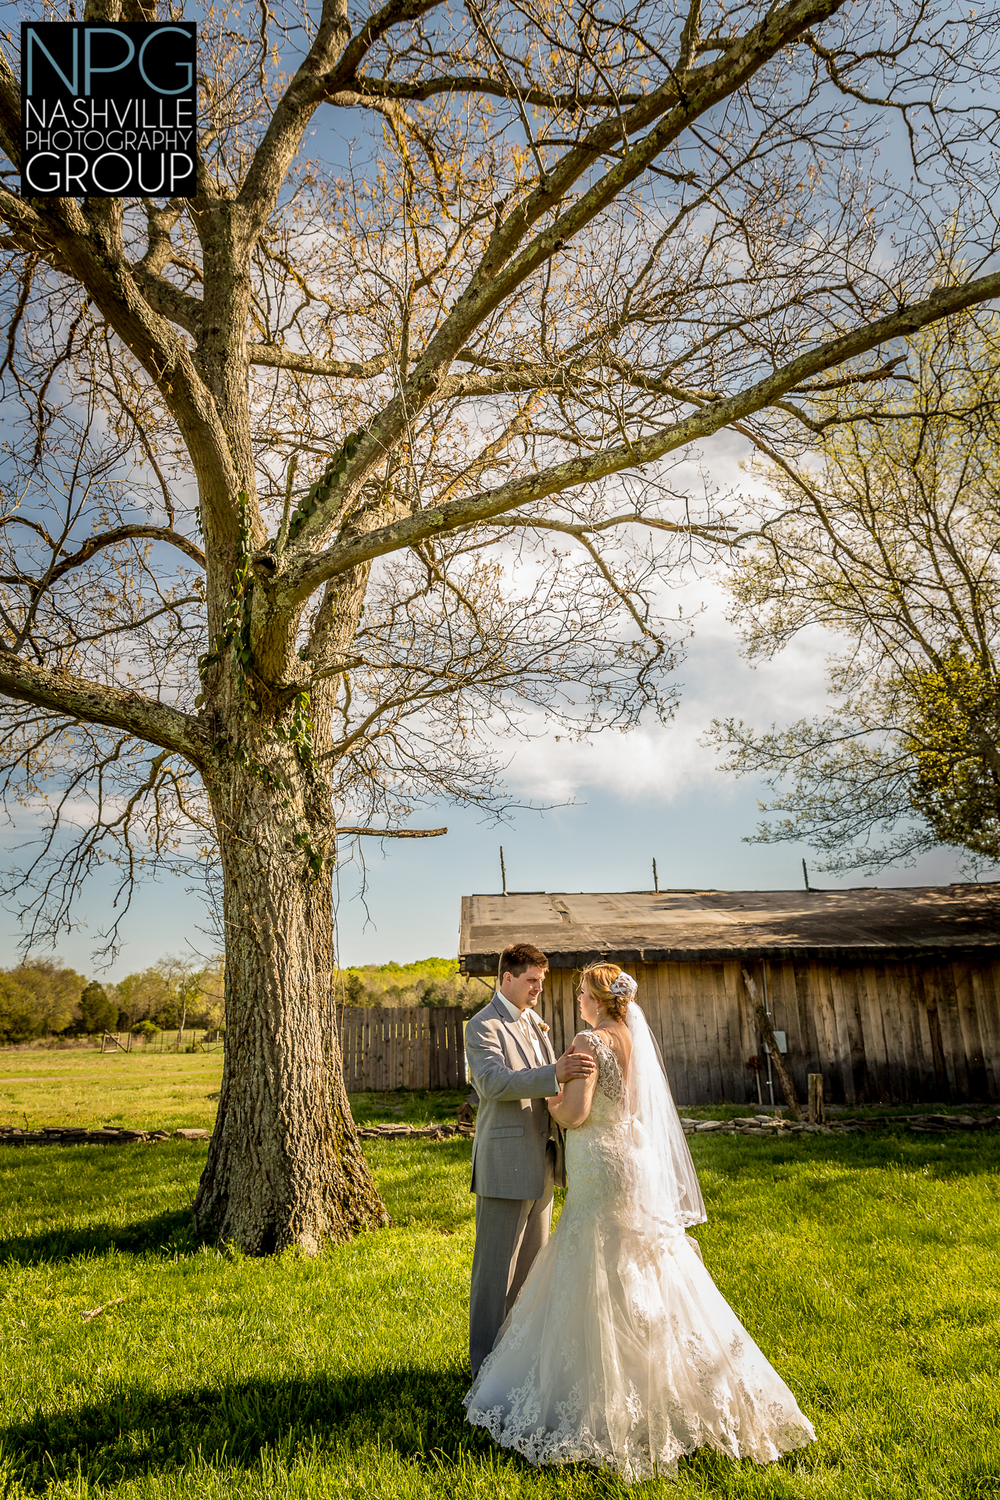 Nashville Photography Group wedding photographers-1.jpg